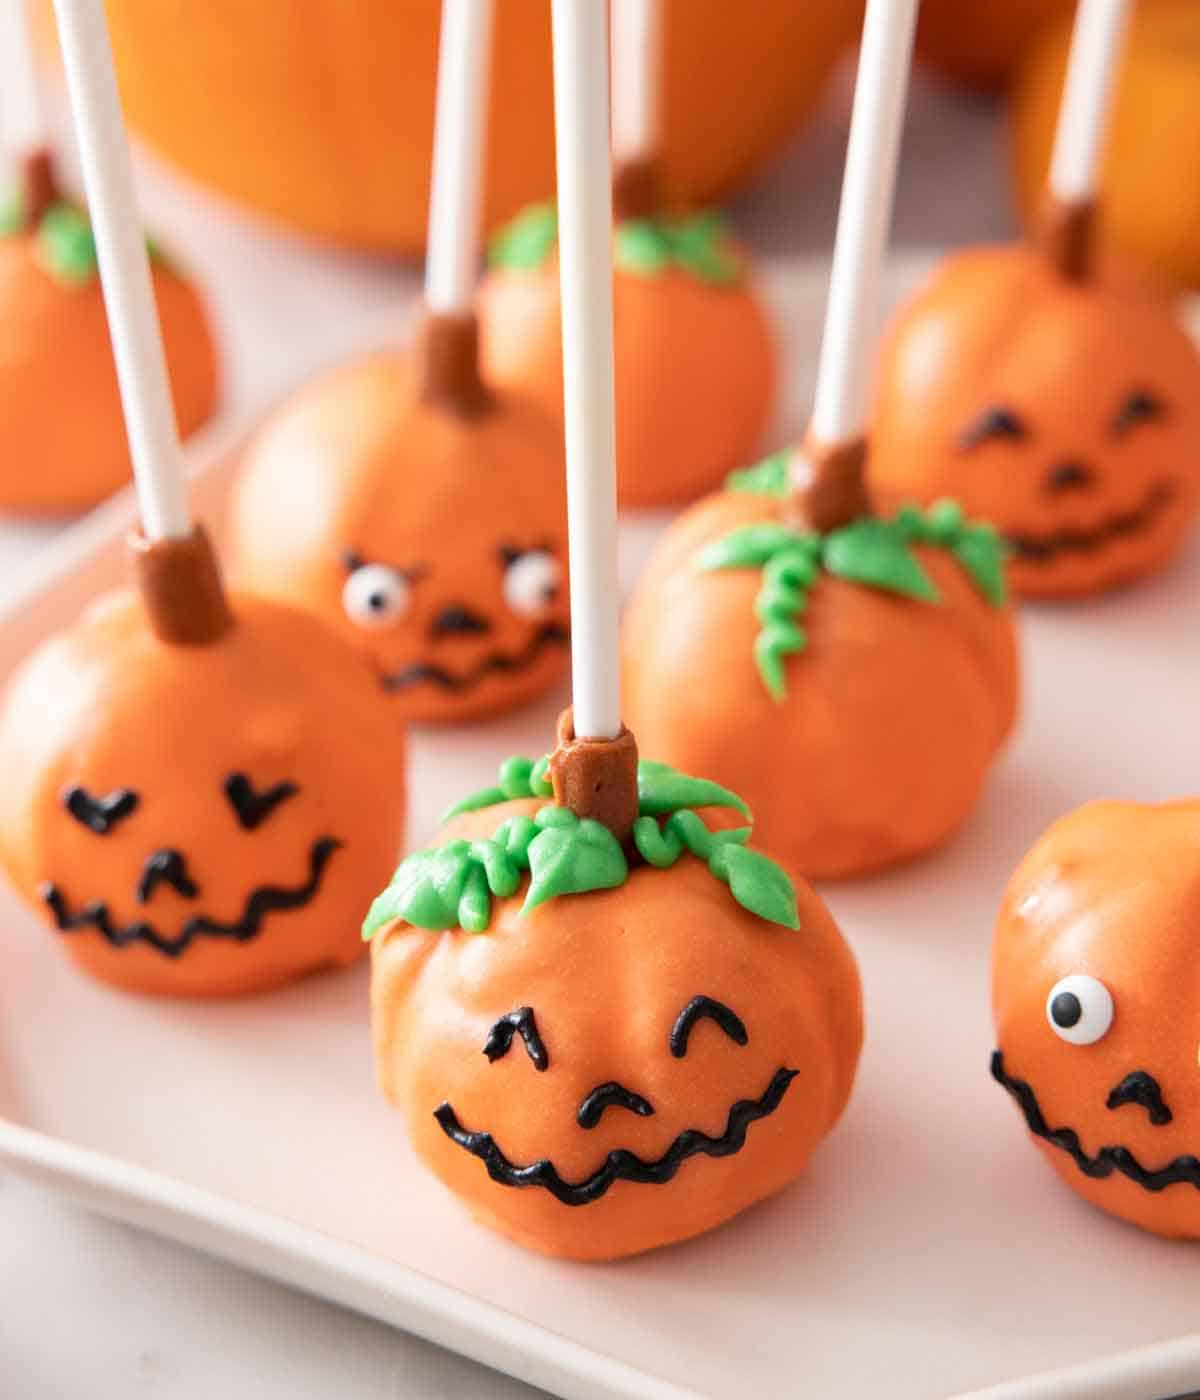 Pumpkin cake pops with smiley faces on a plate.